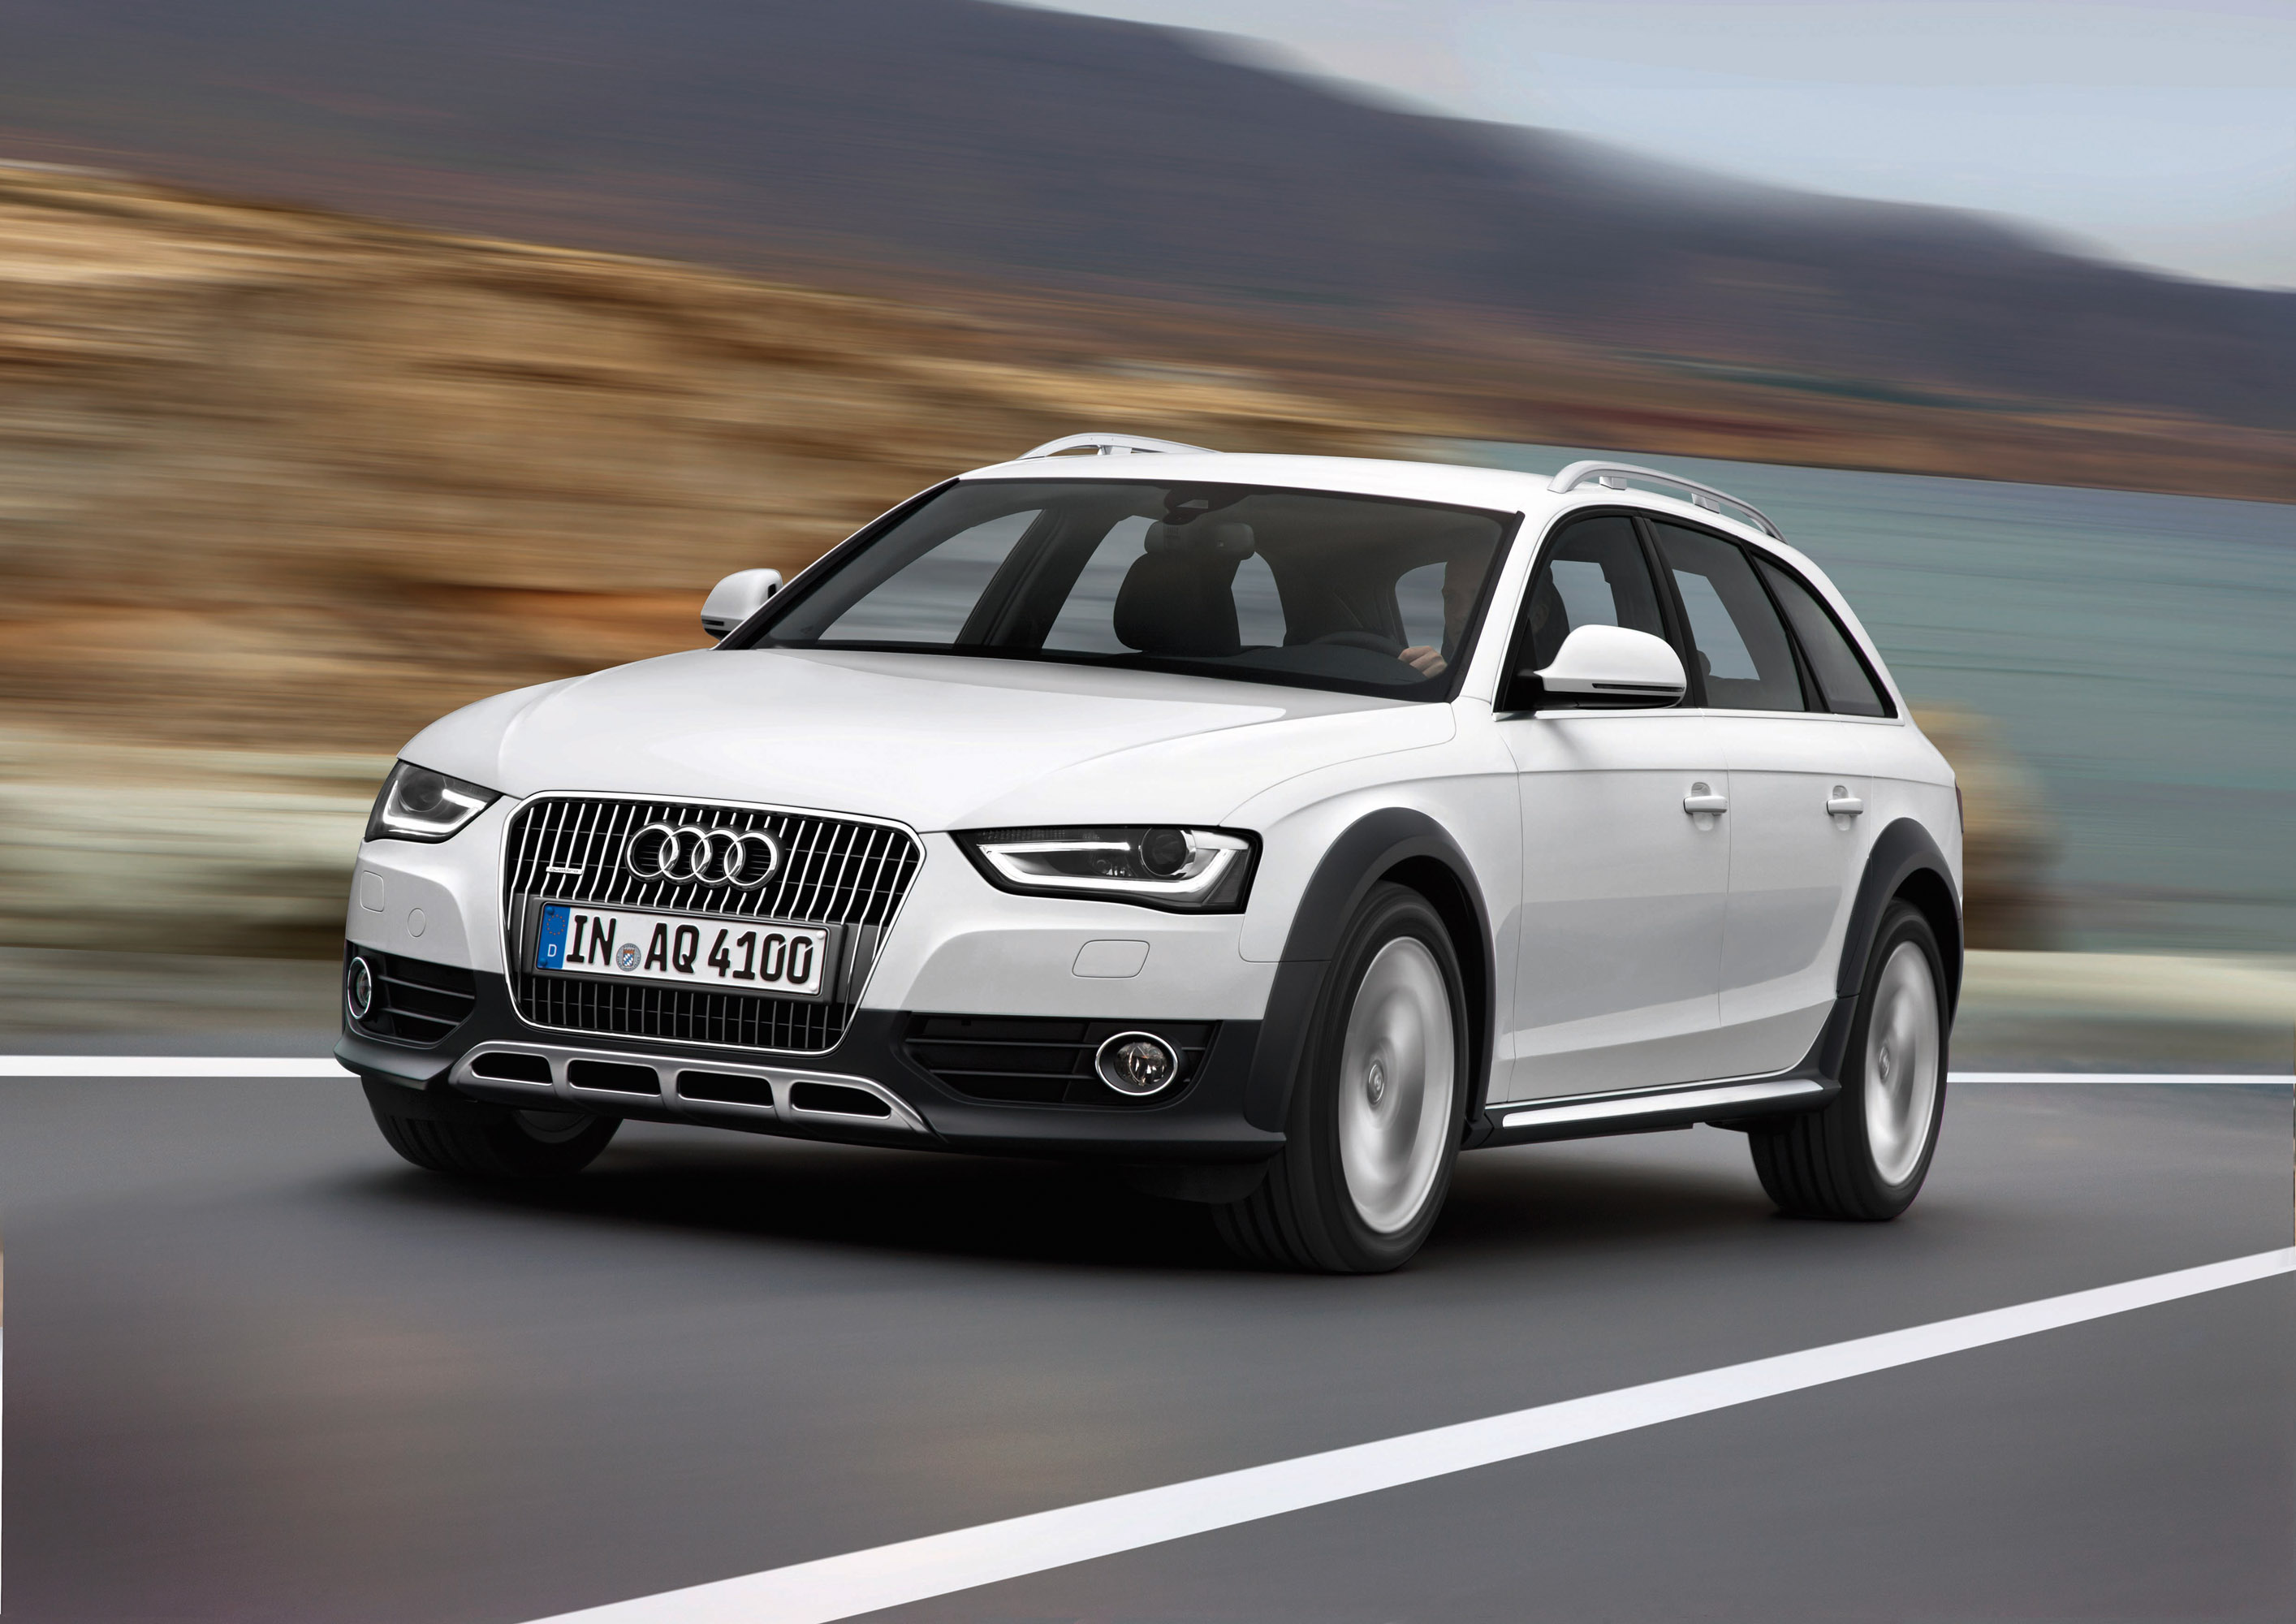 Index of /img/2012-audi-a4-allroad-quattro